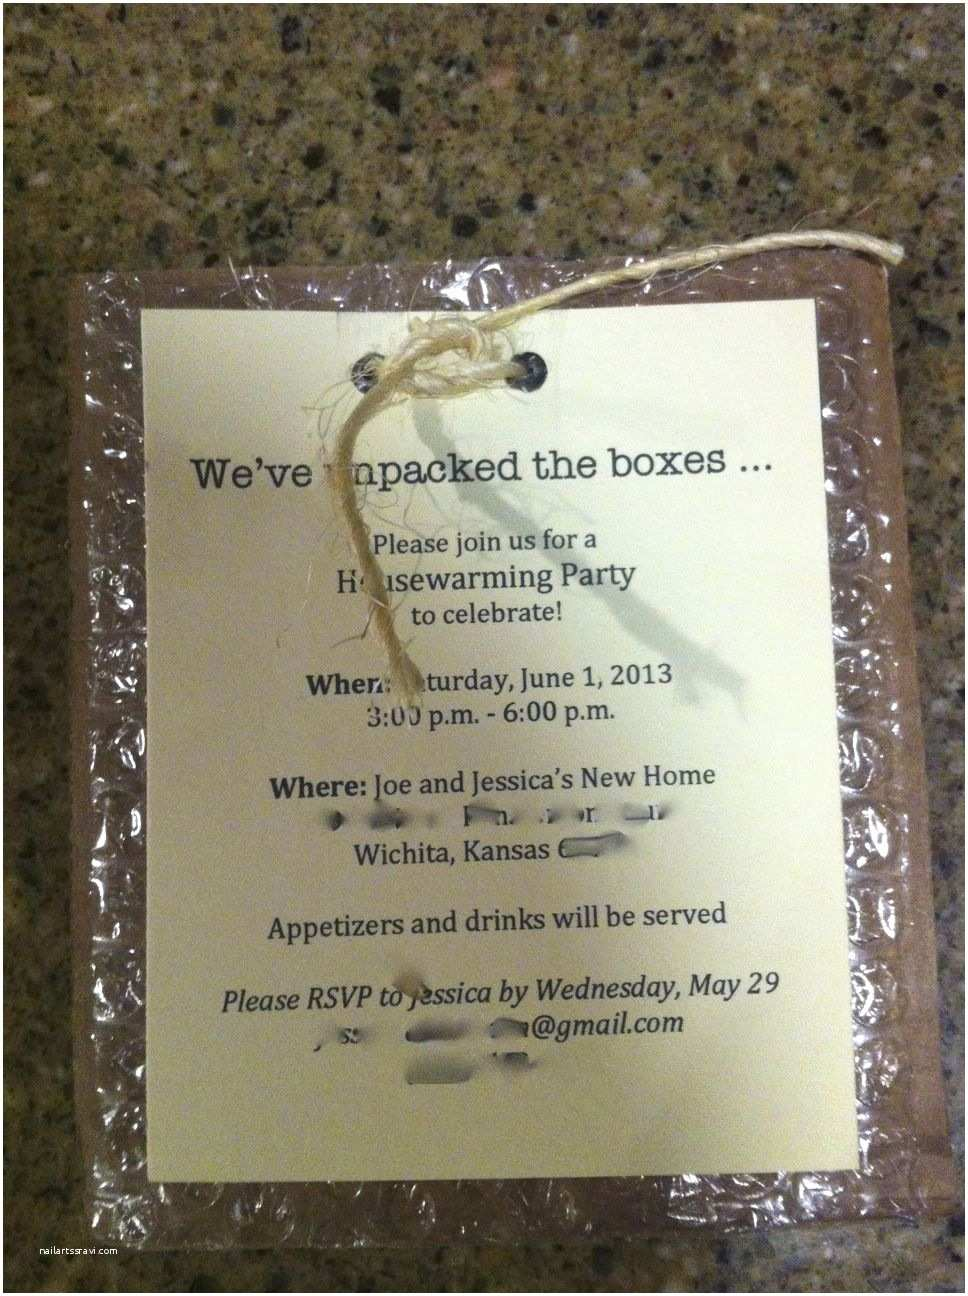 /housewarming/housewarming Invitations Our Housewarming Party Invitation with Personal Info